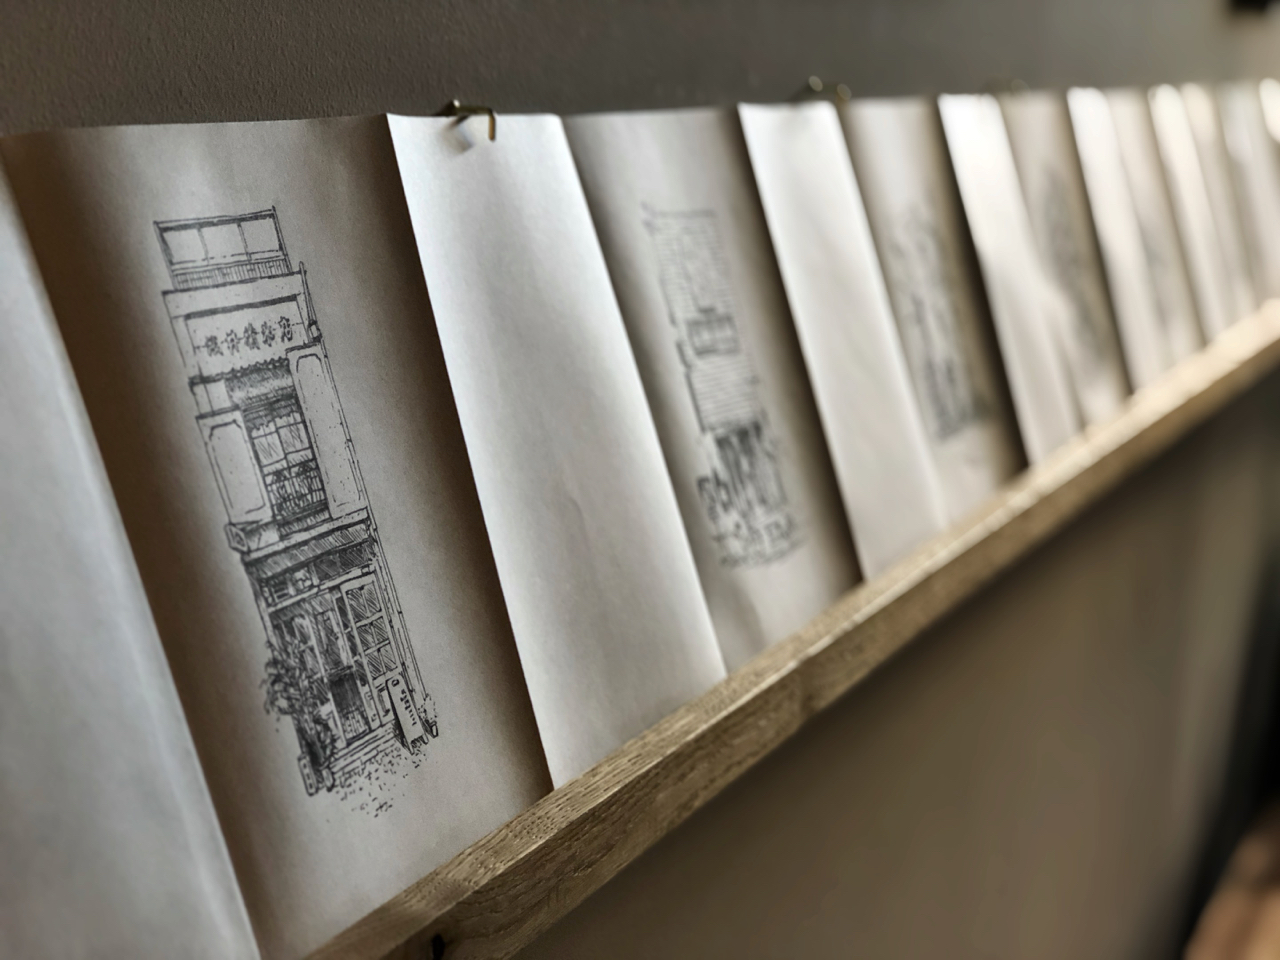 line drawings on folded book